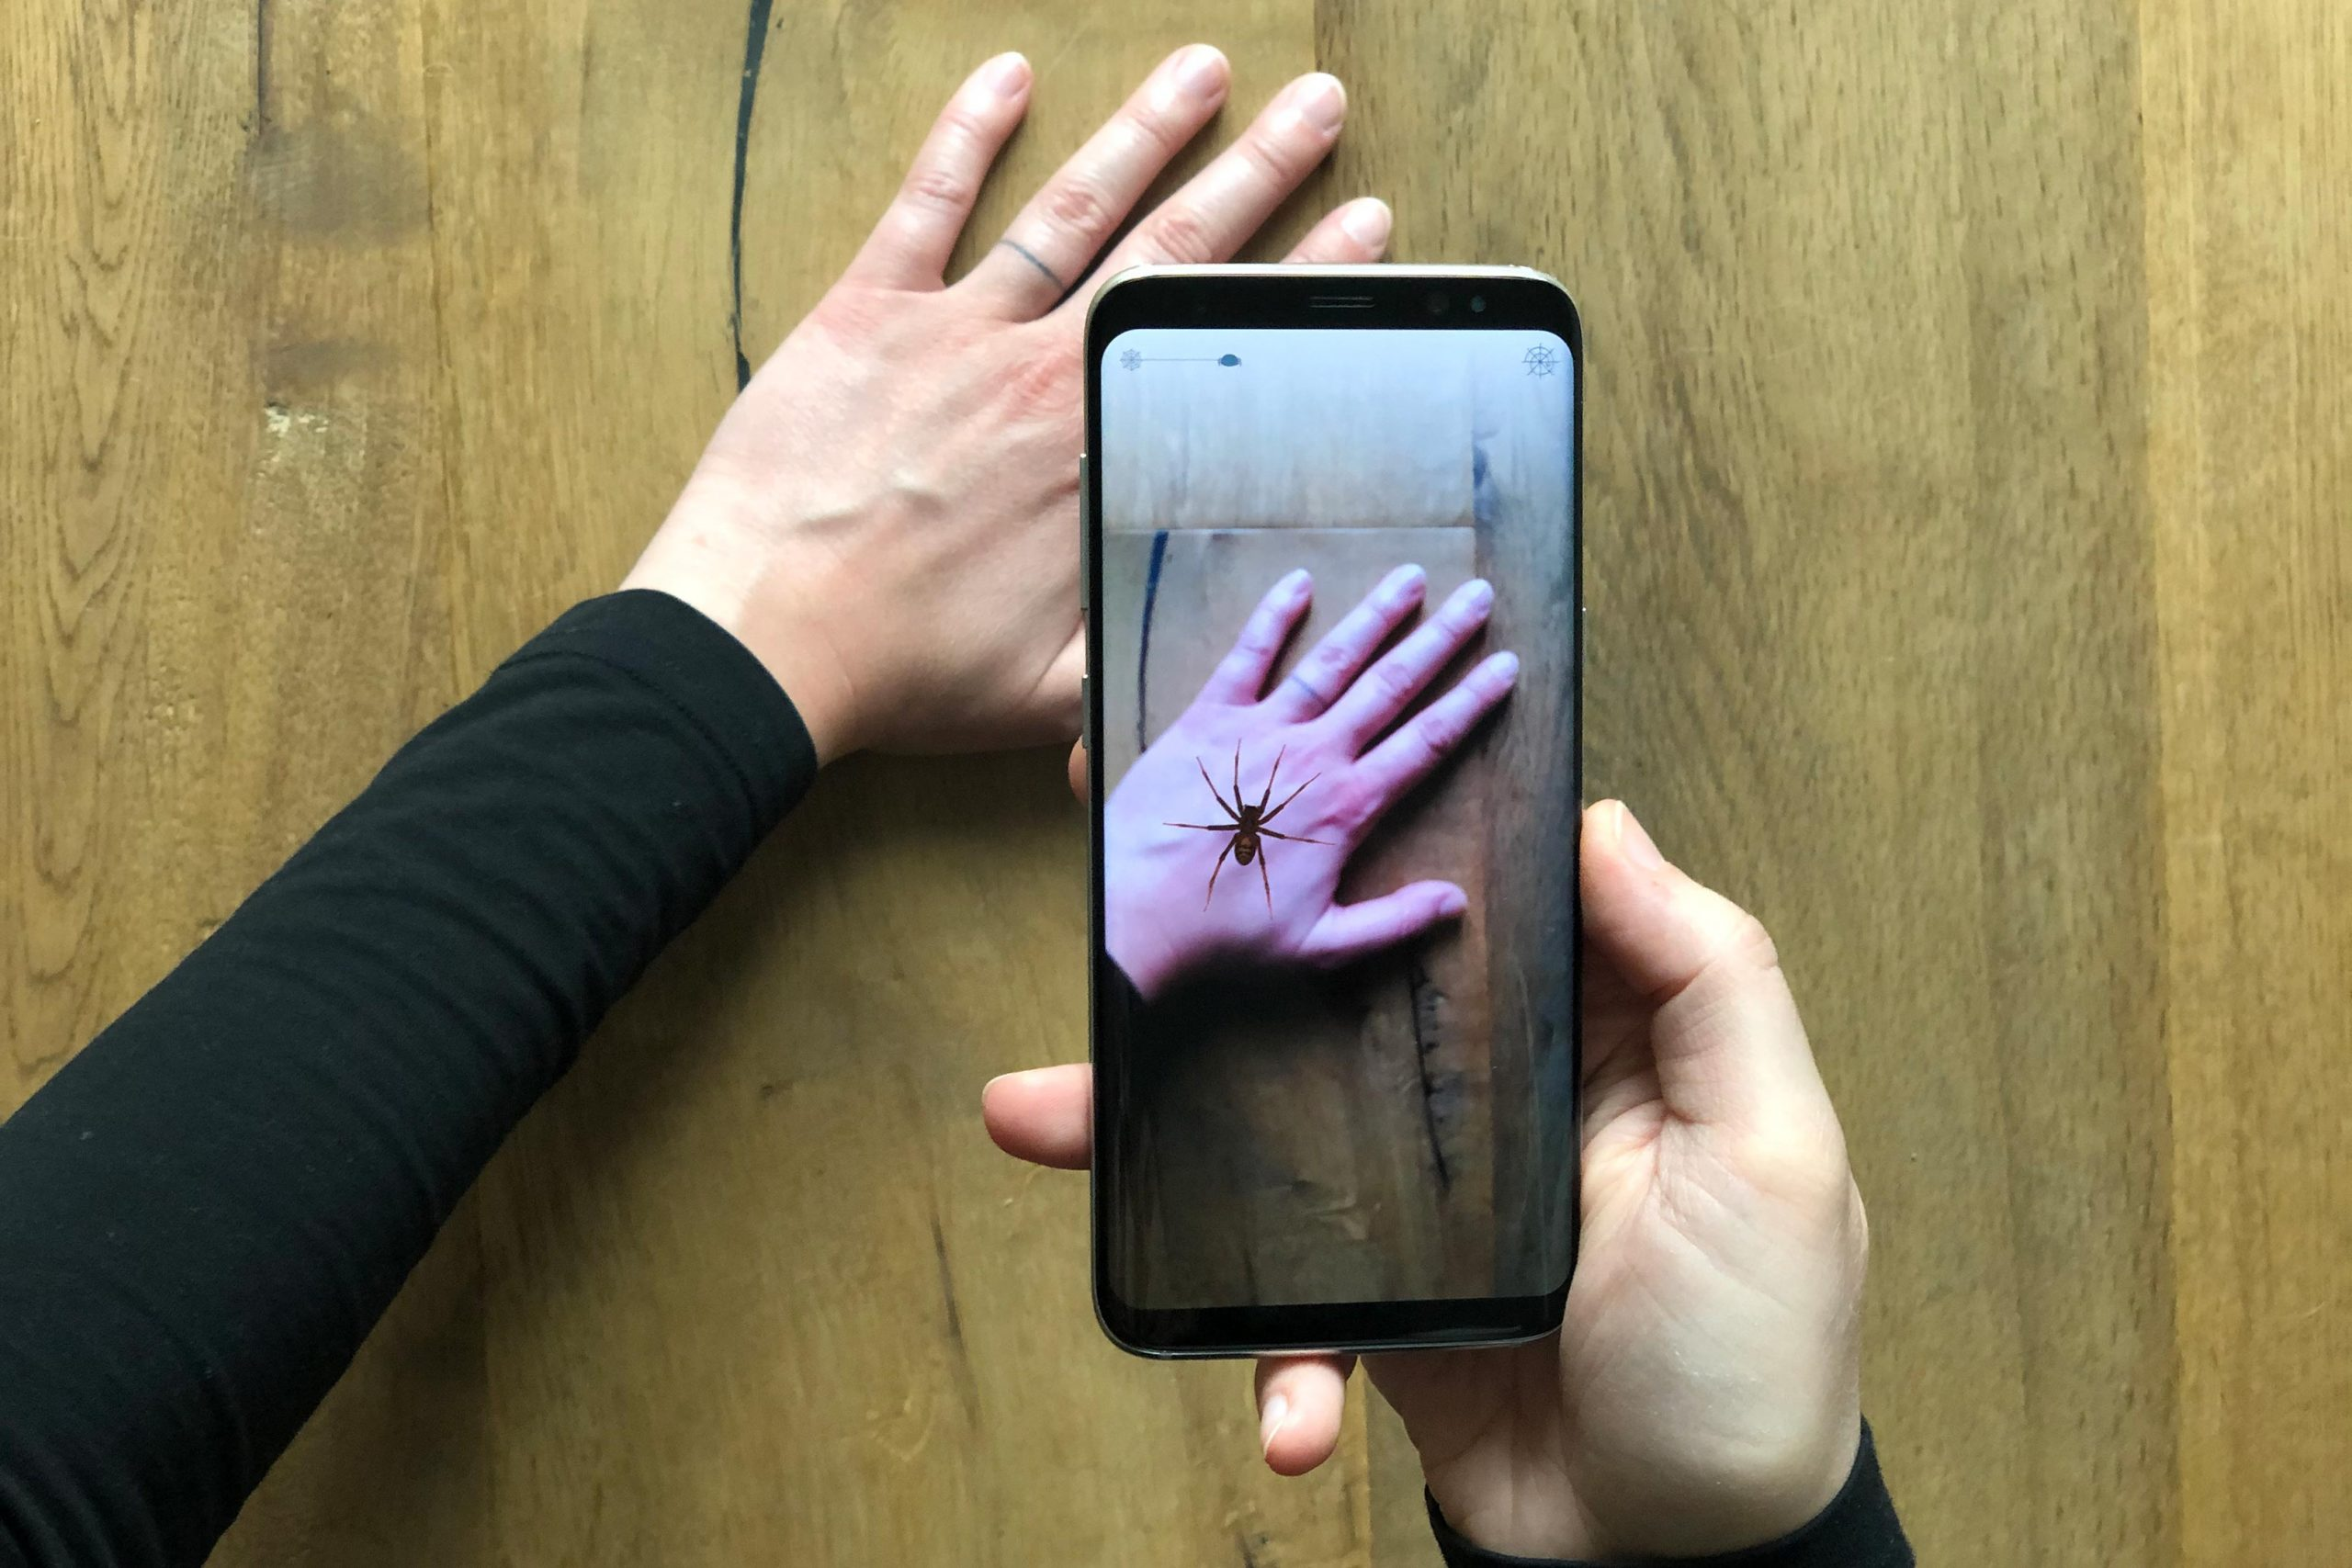 Smartphone App Helps Tackle Fear of Spiders Using Augmented Reality - SciTechDaily